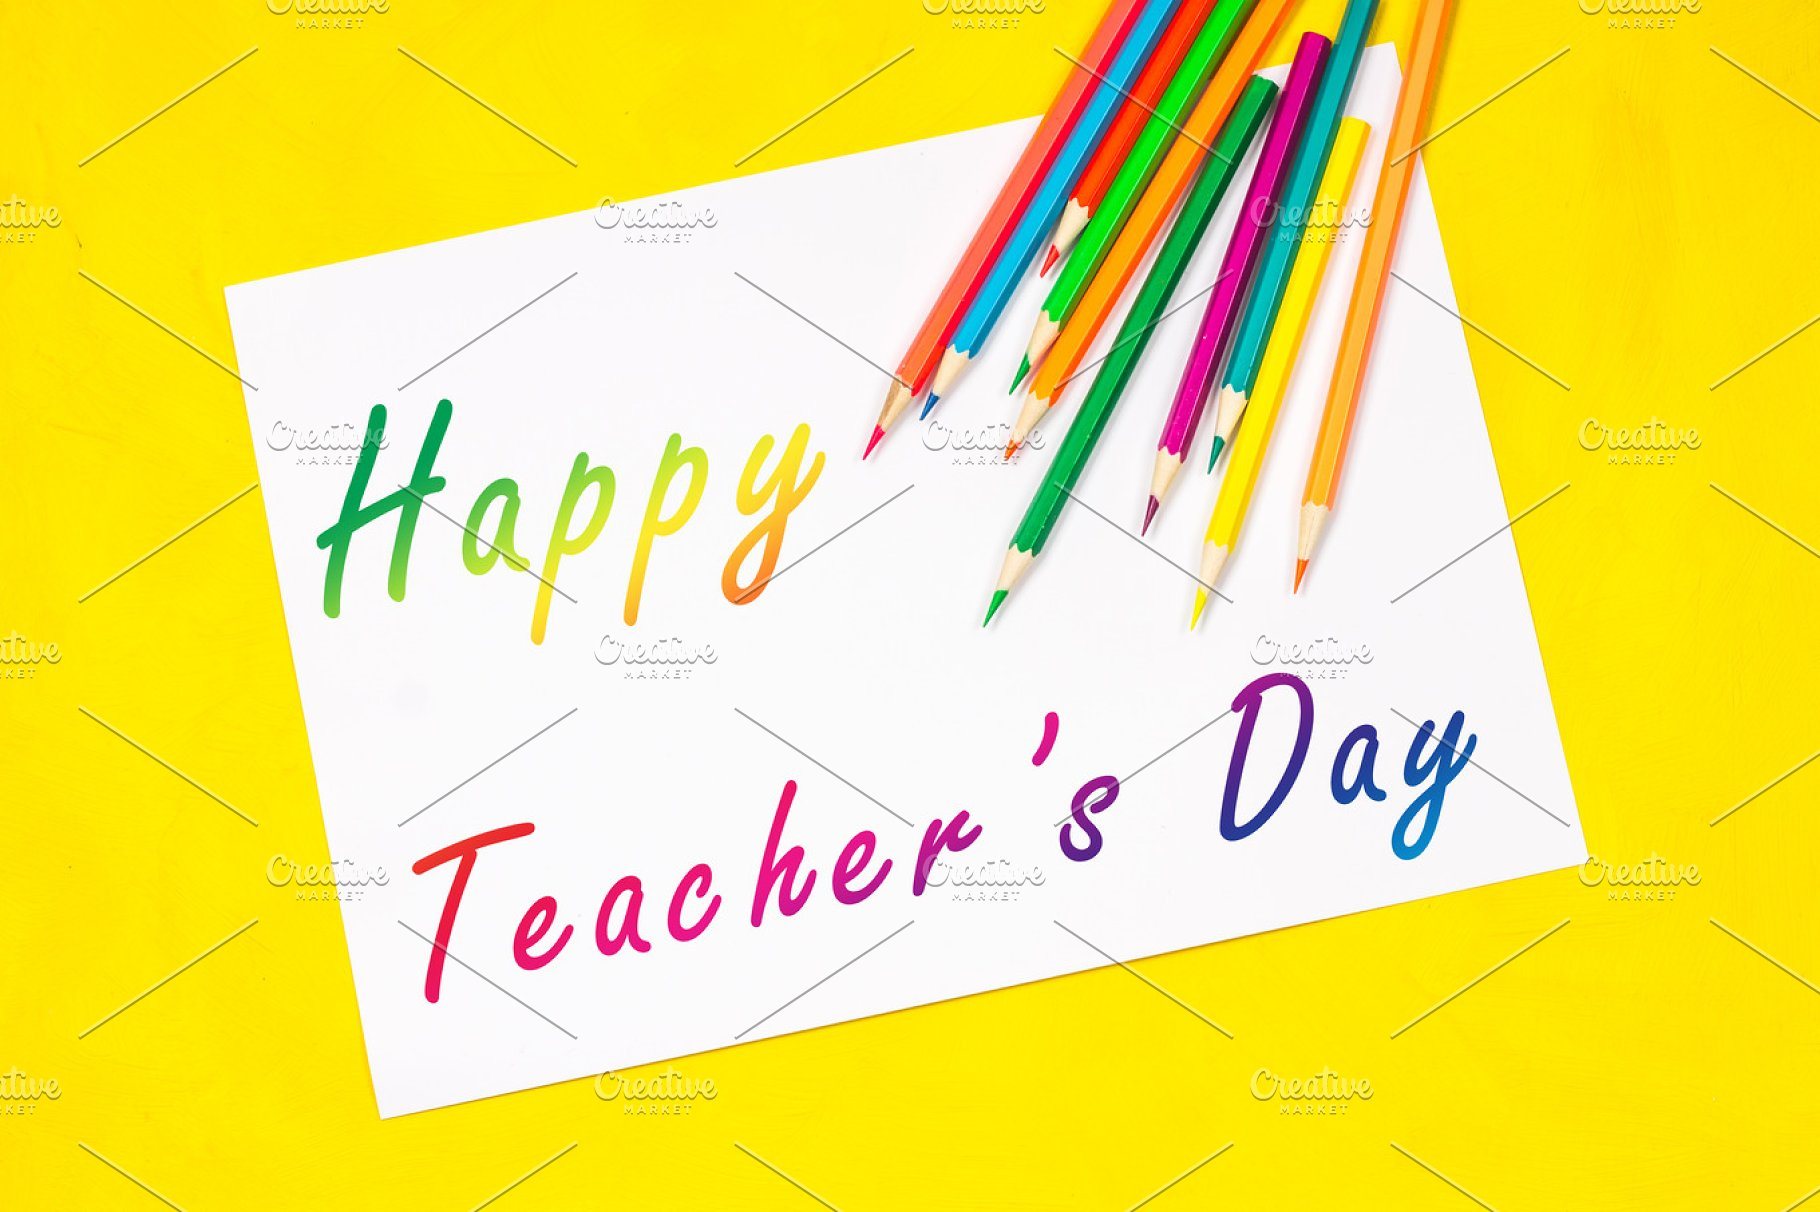 Concept of Teachers Day  Caption: A happy teacher's day surrounded by  colors, pencils, pens, school objects